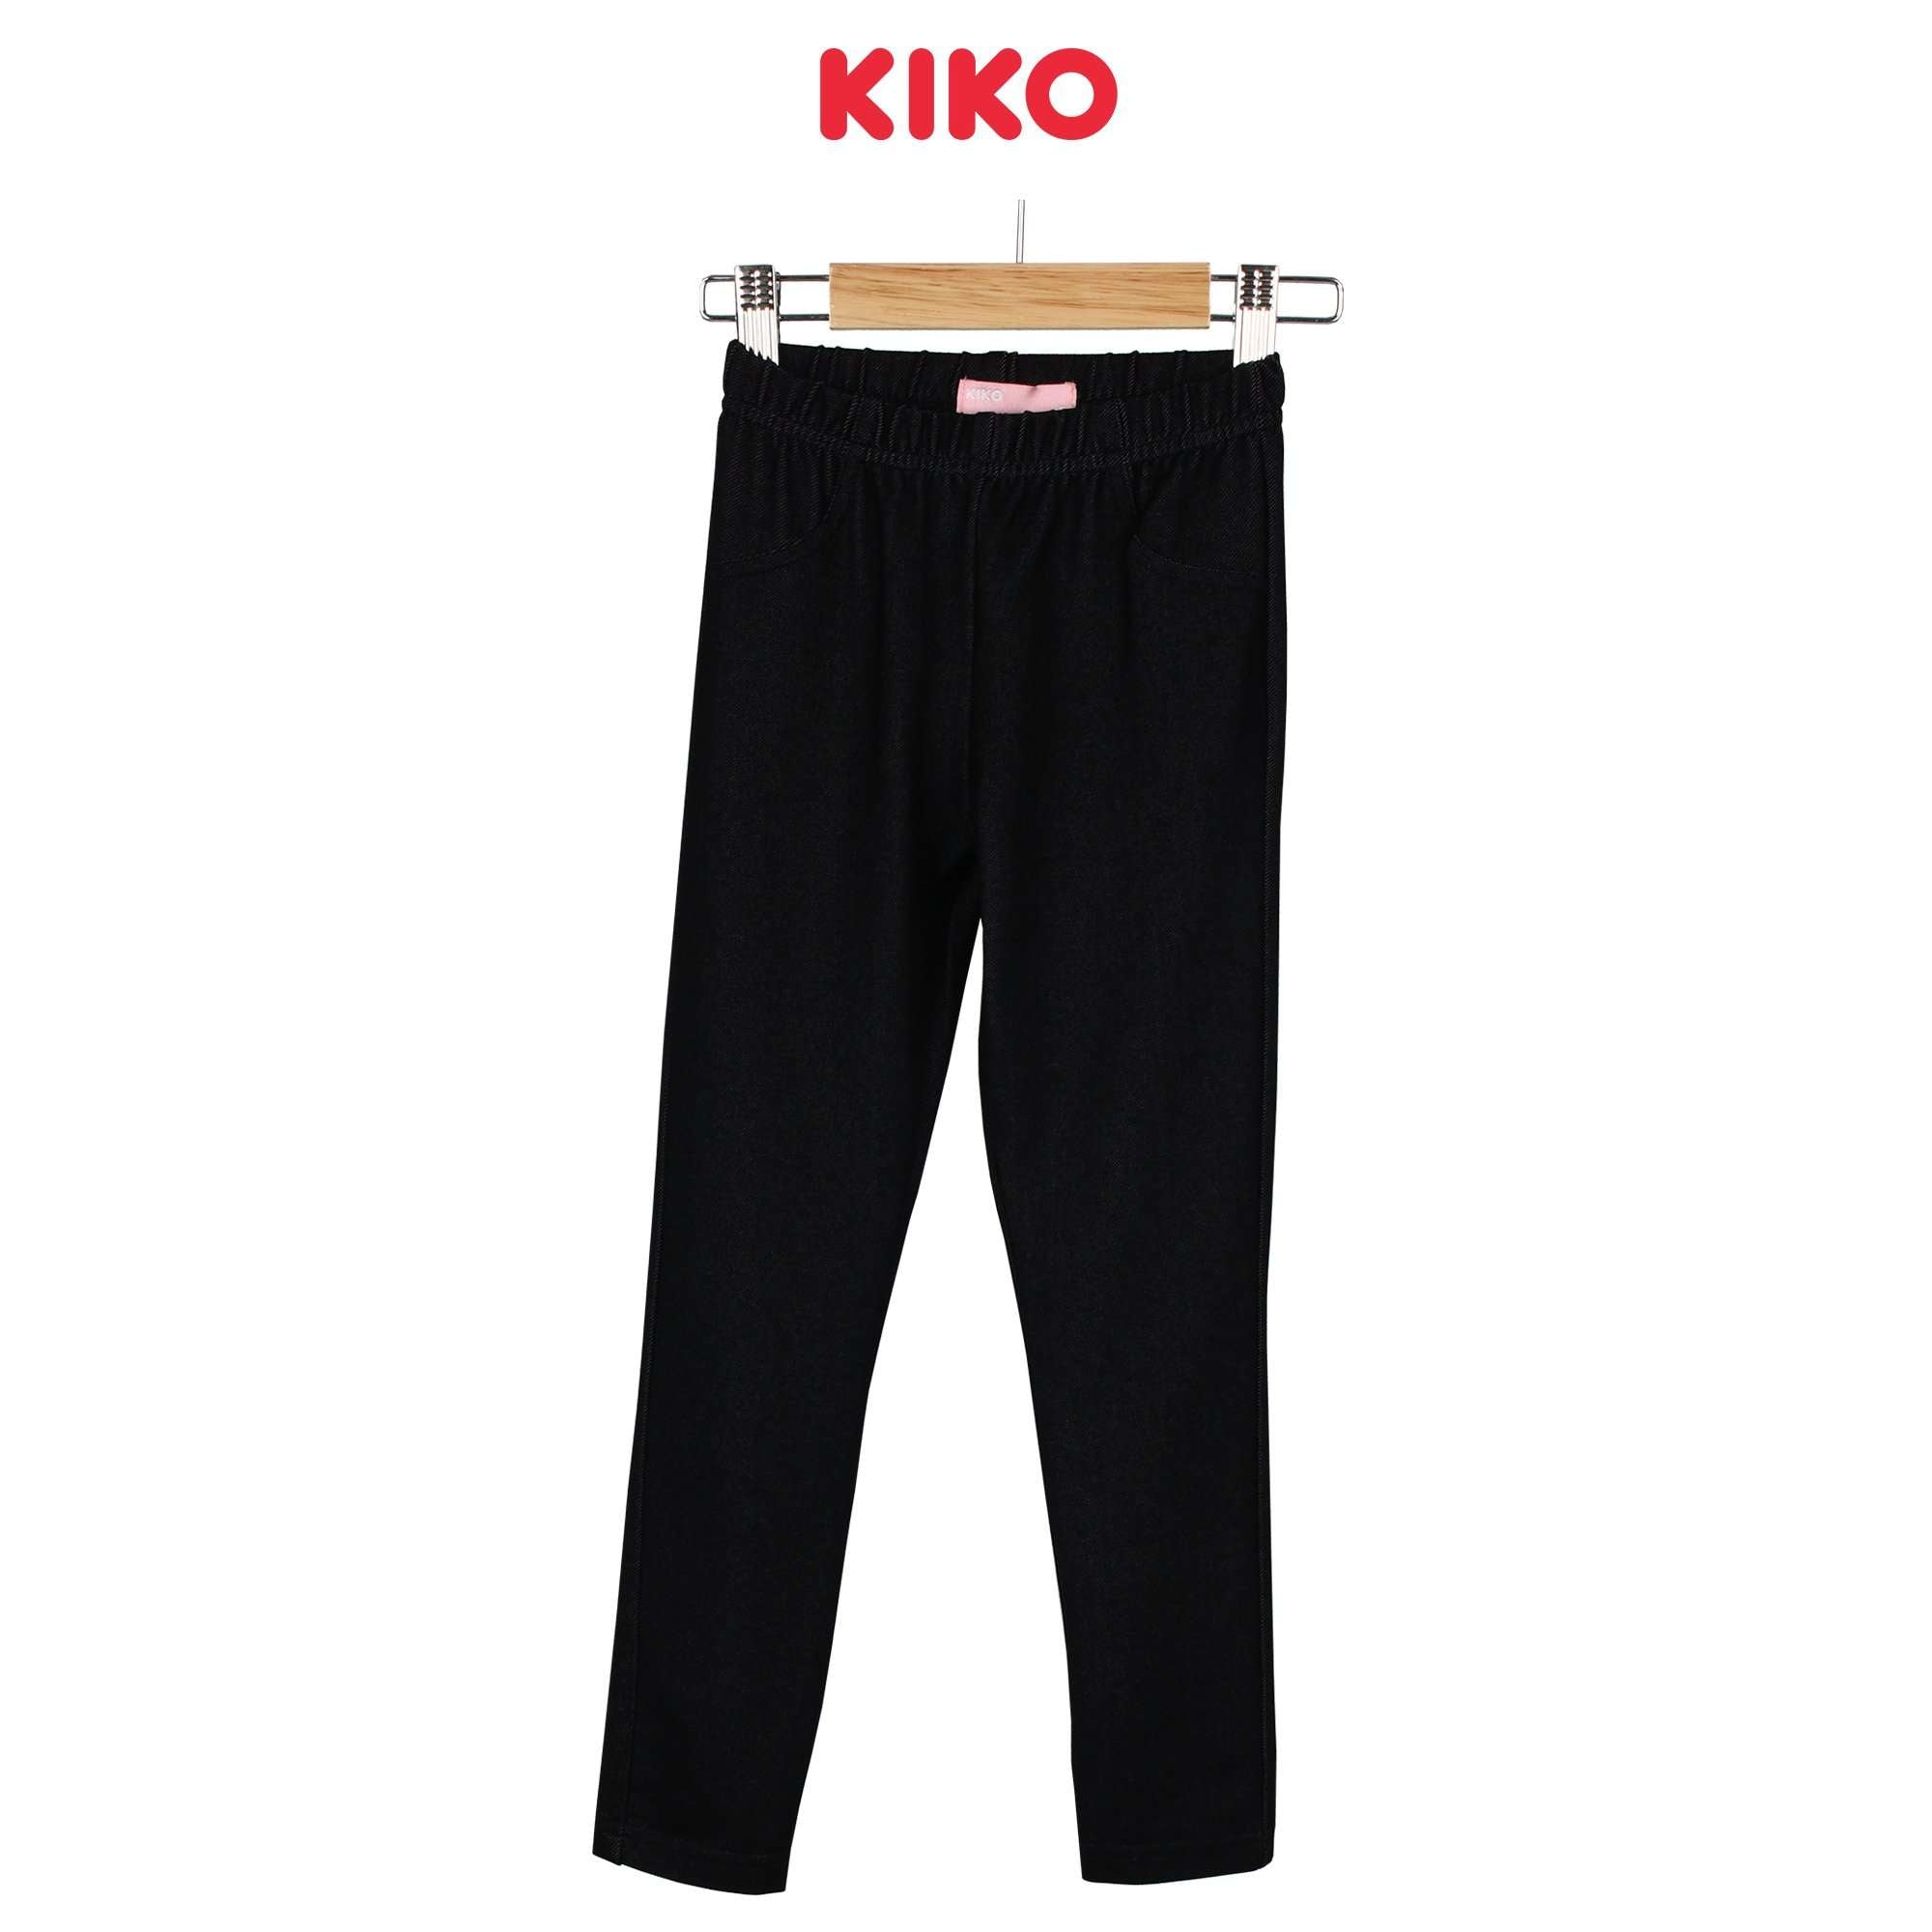 KIKO Girl Long Pants - Black 126073-281 : Buy KIKO online at CMG.MY